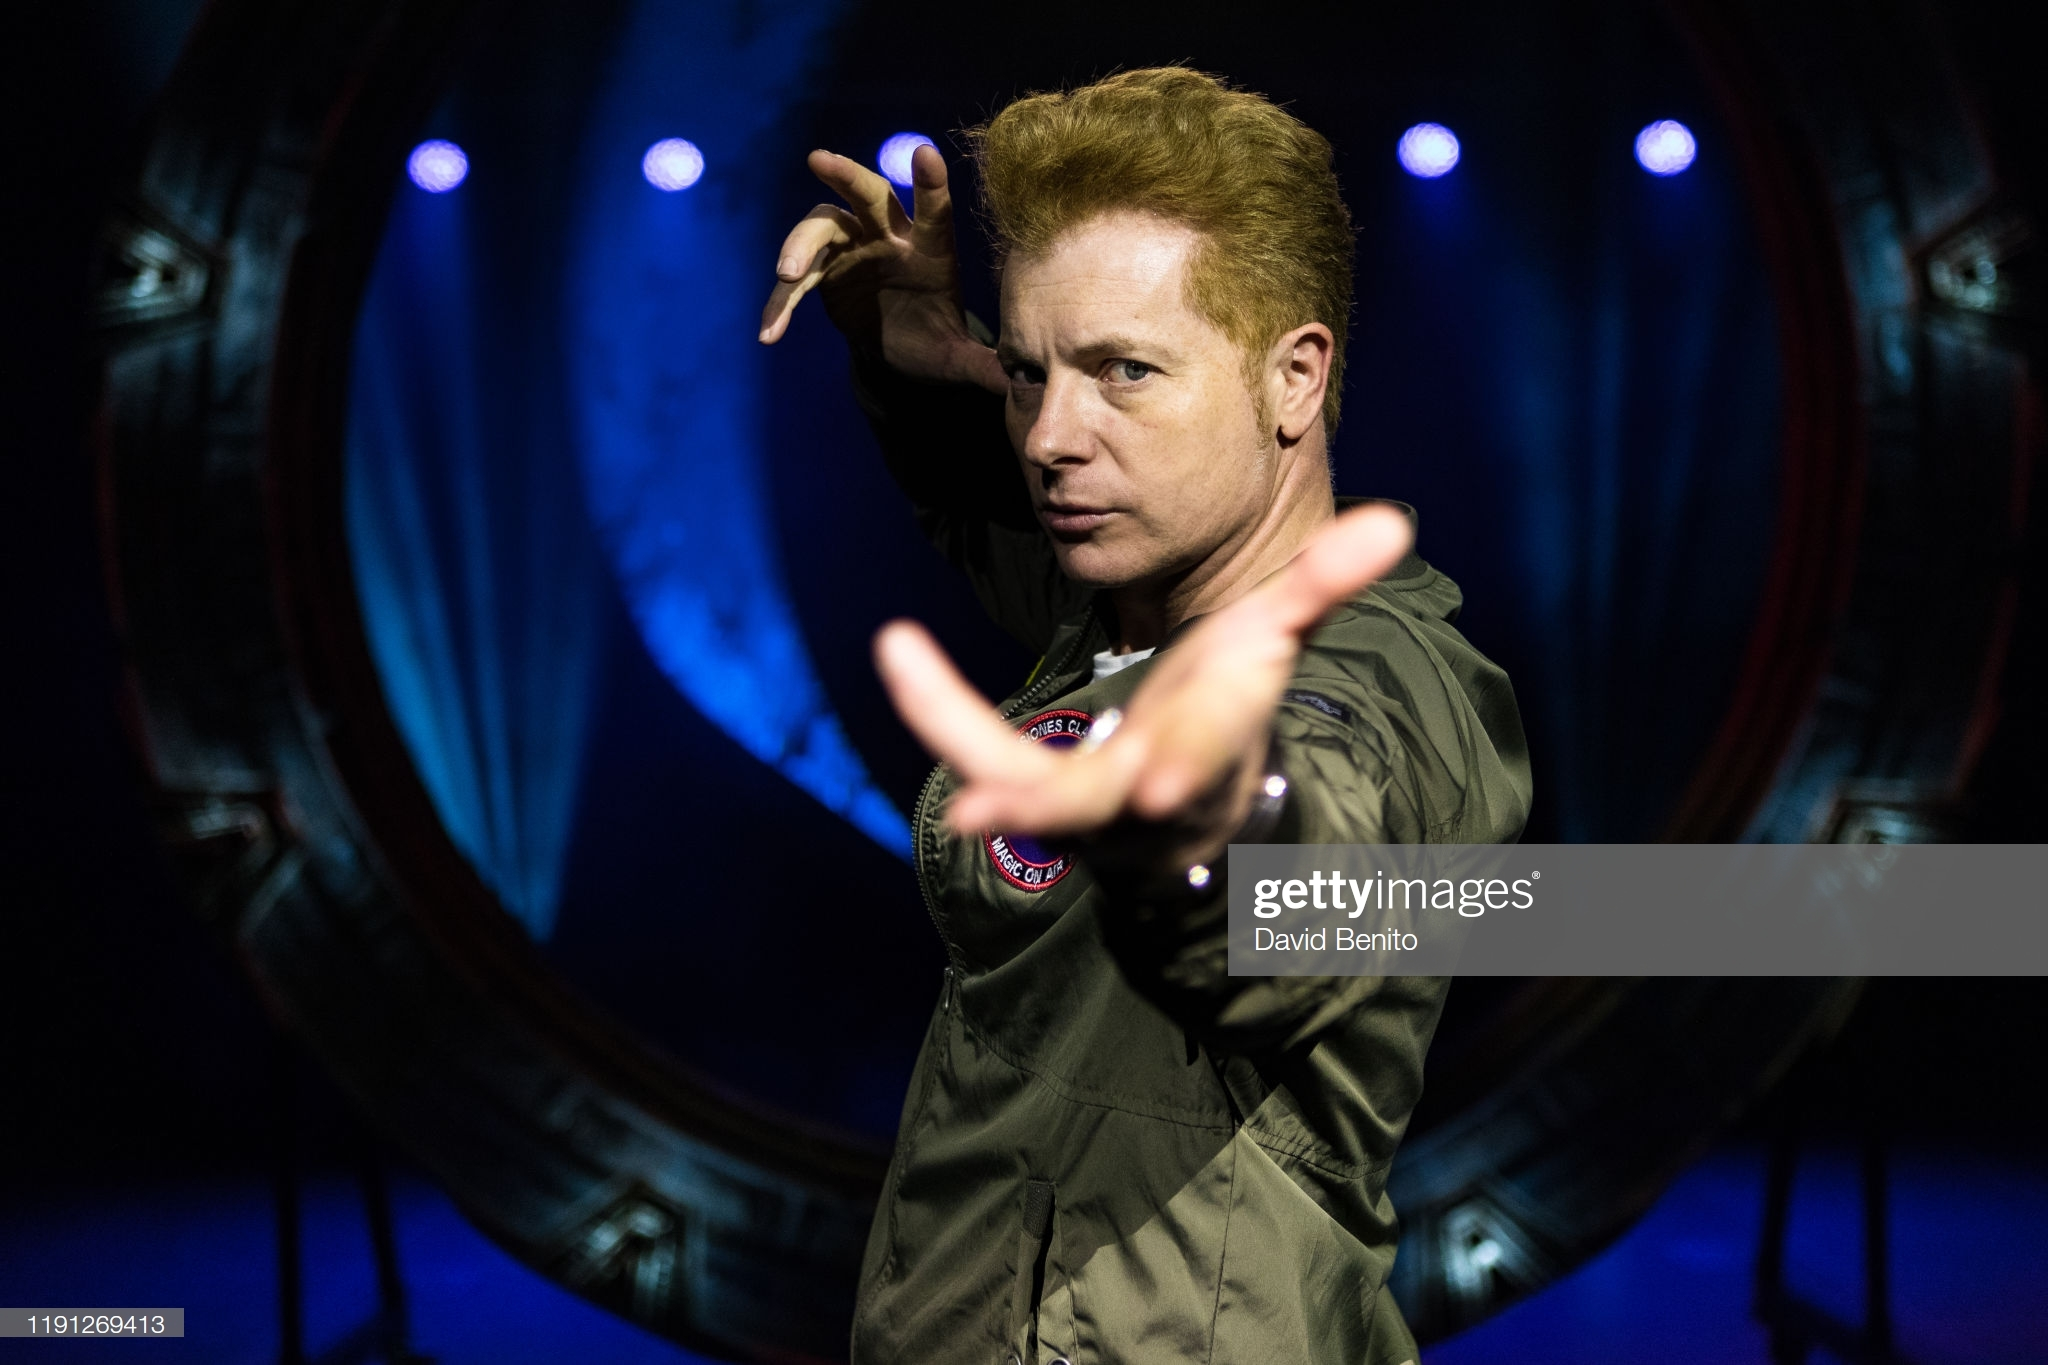 gettyimages-1191269413-2048x2048